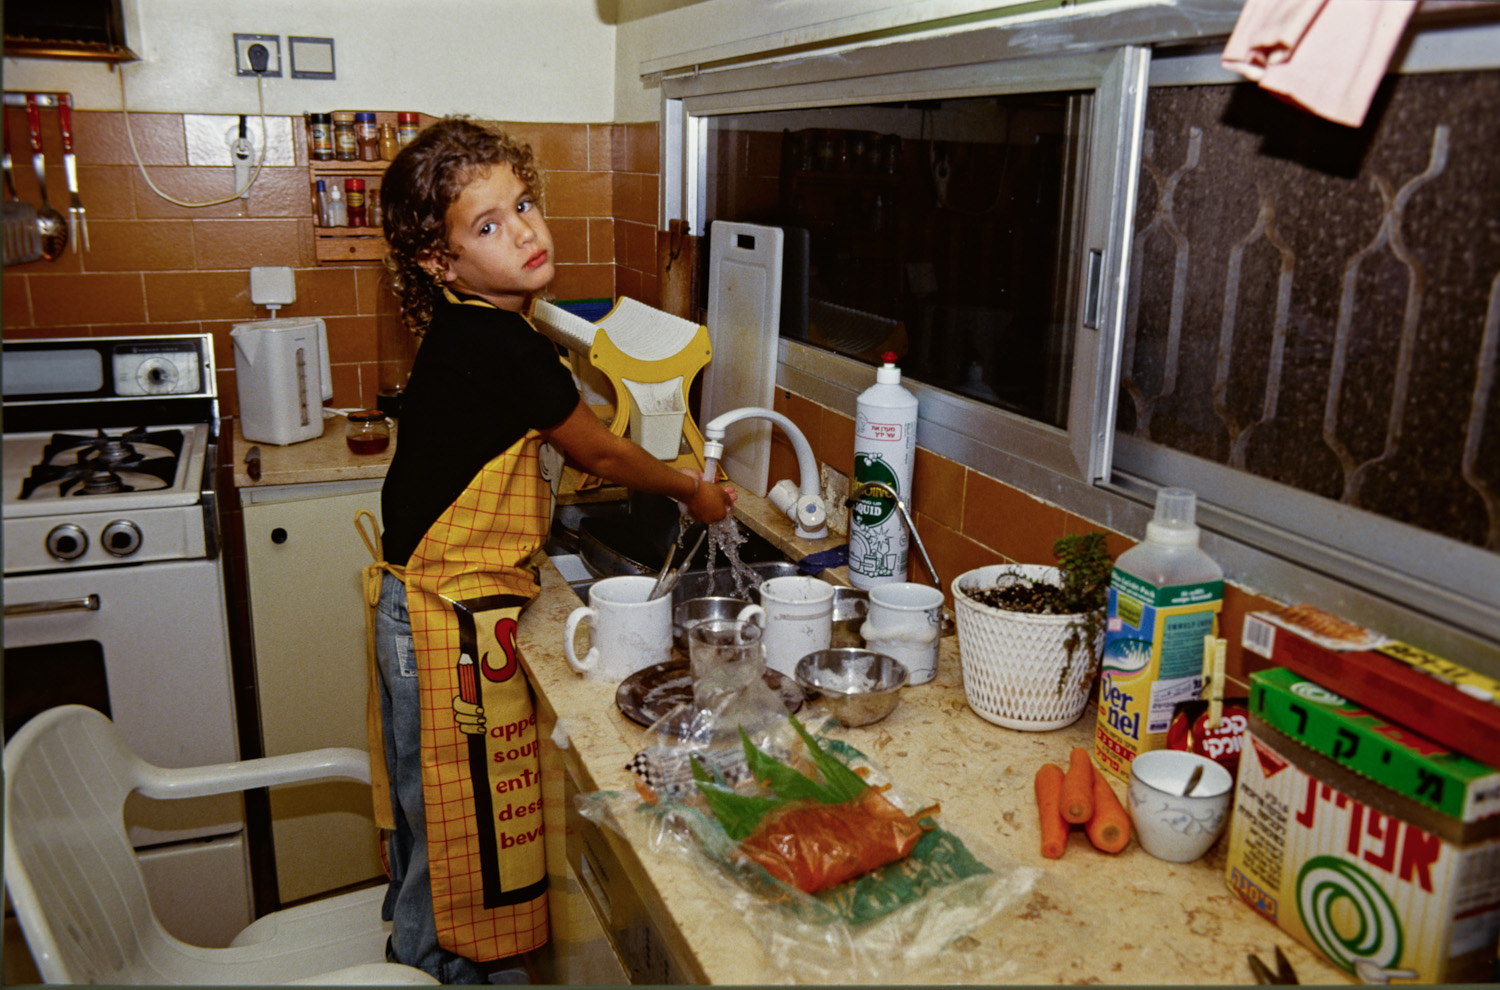 Doing the dishes - Golden Beach, 1991